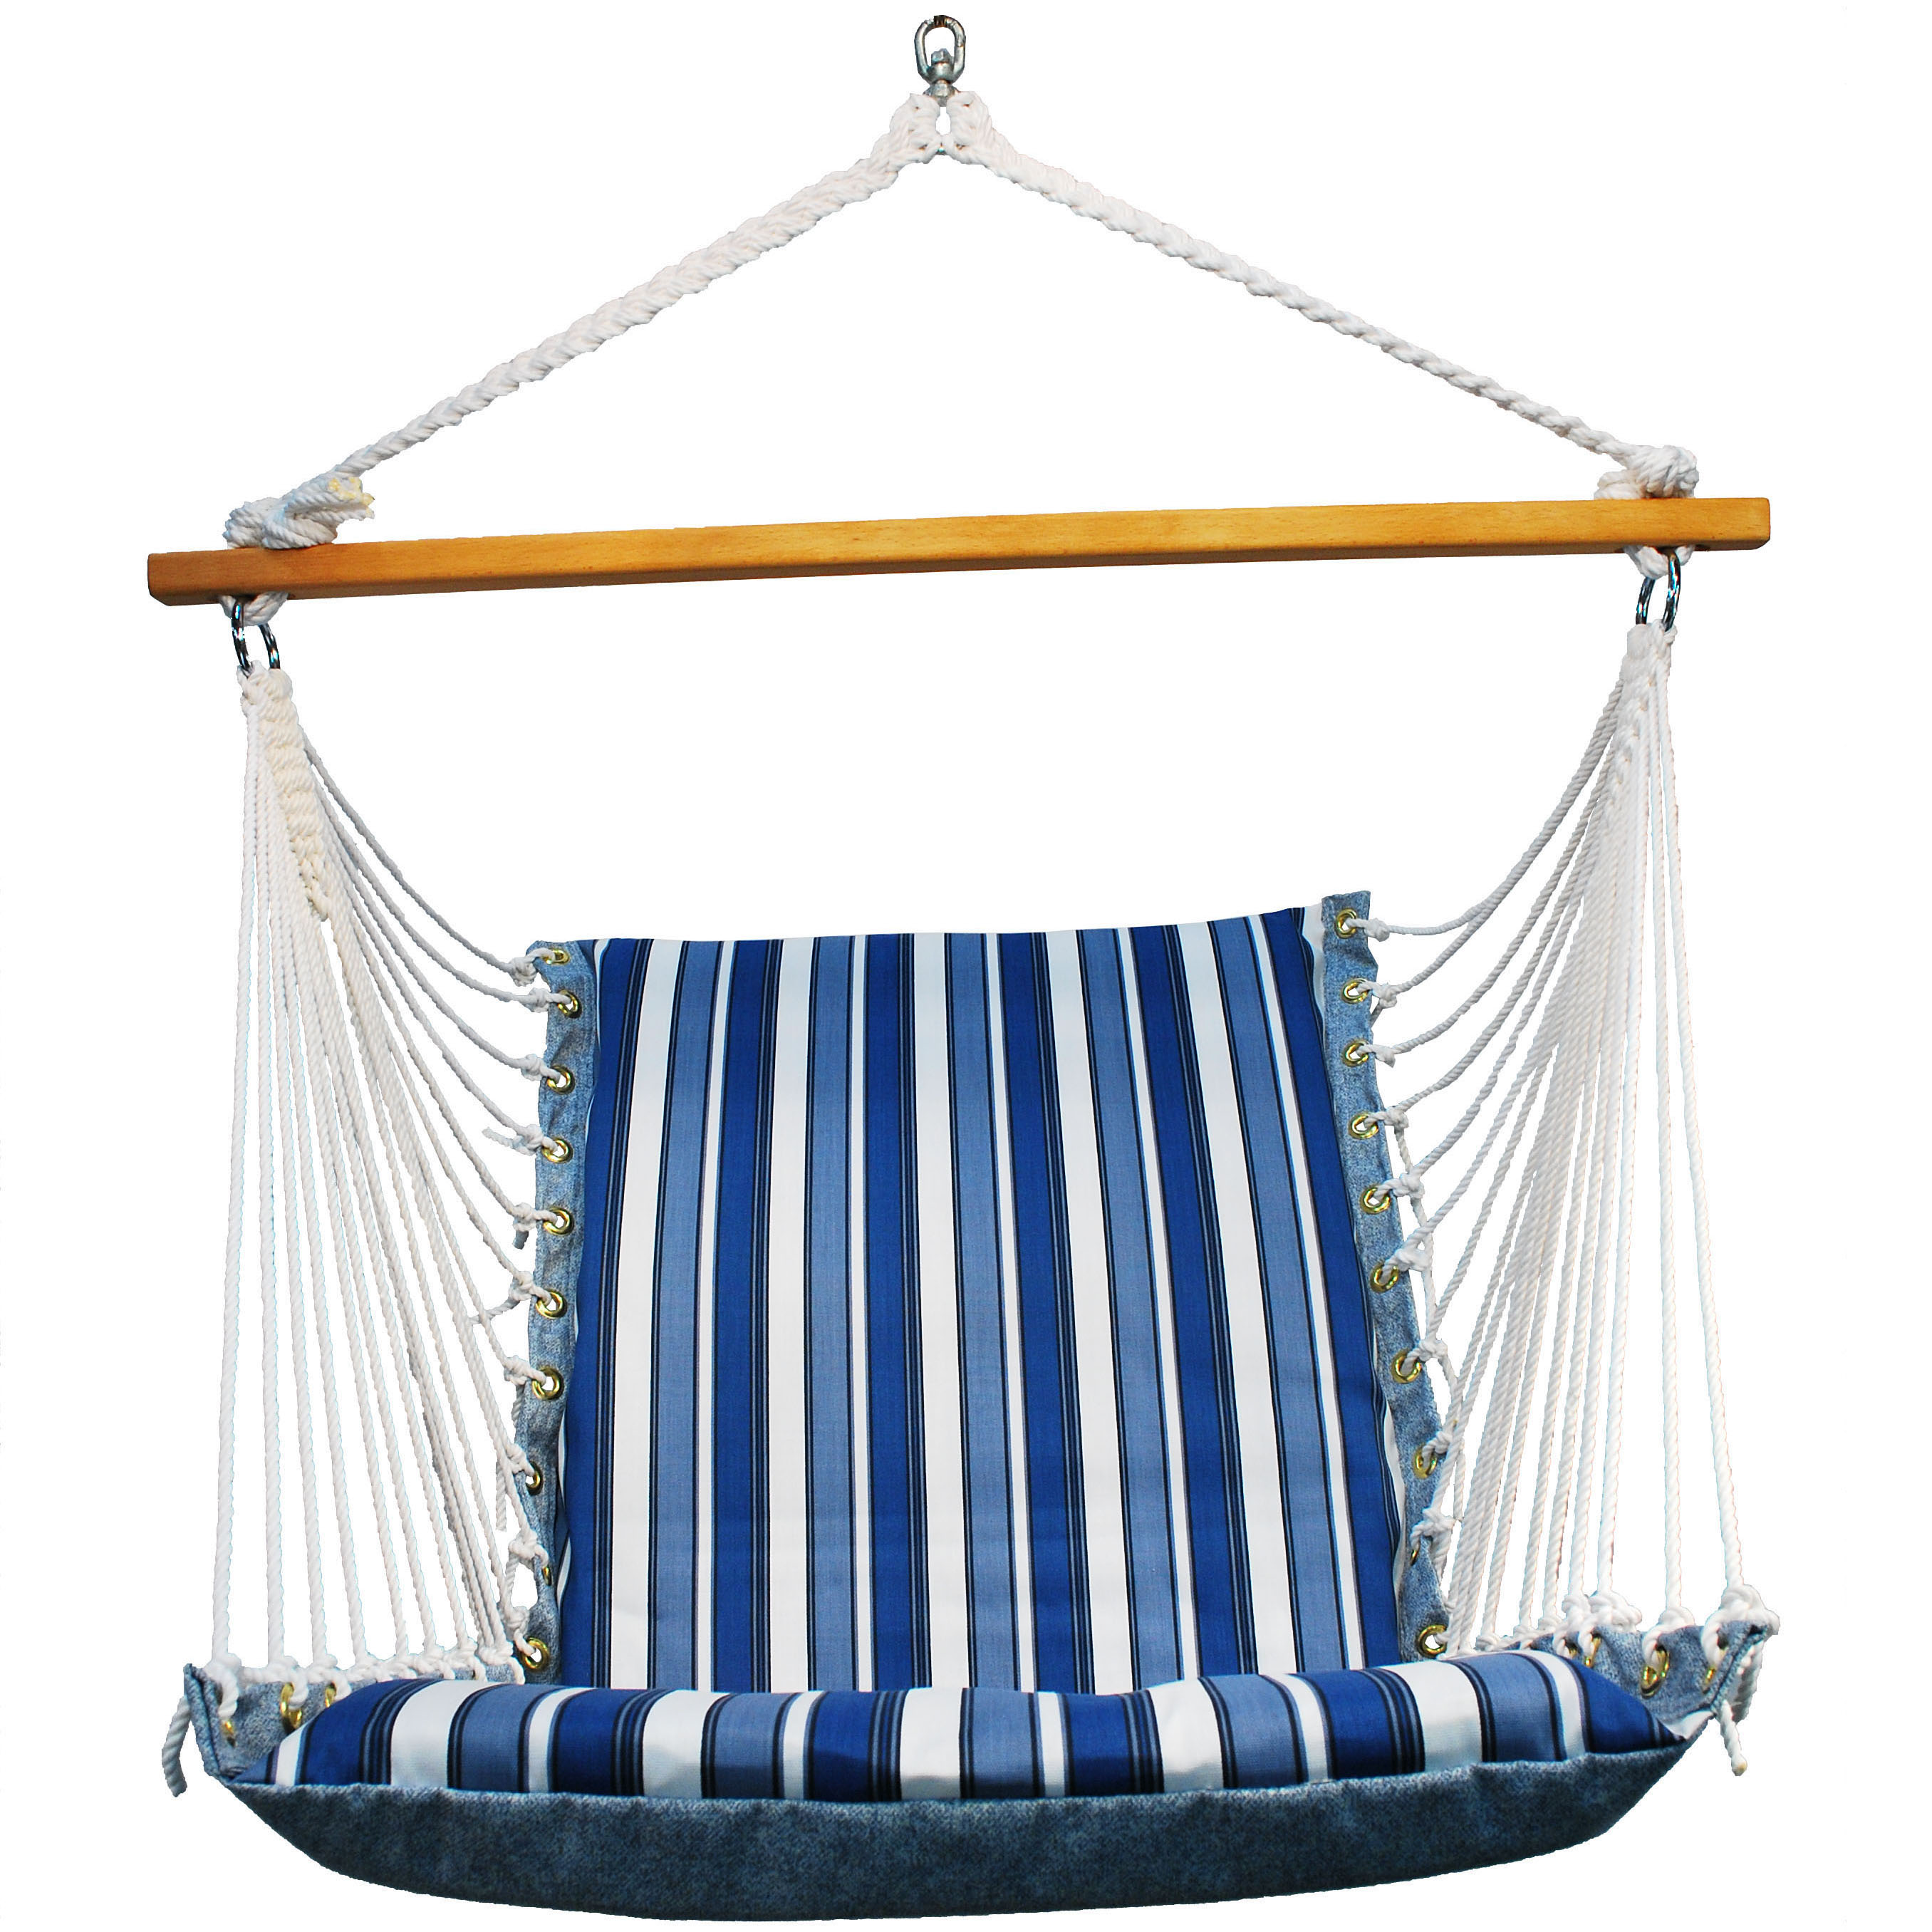 Soft Comfort Cushion Hanging Chair, Tropical Palm Stripe Blue/Norway Powder Blue